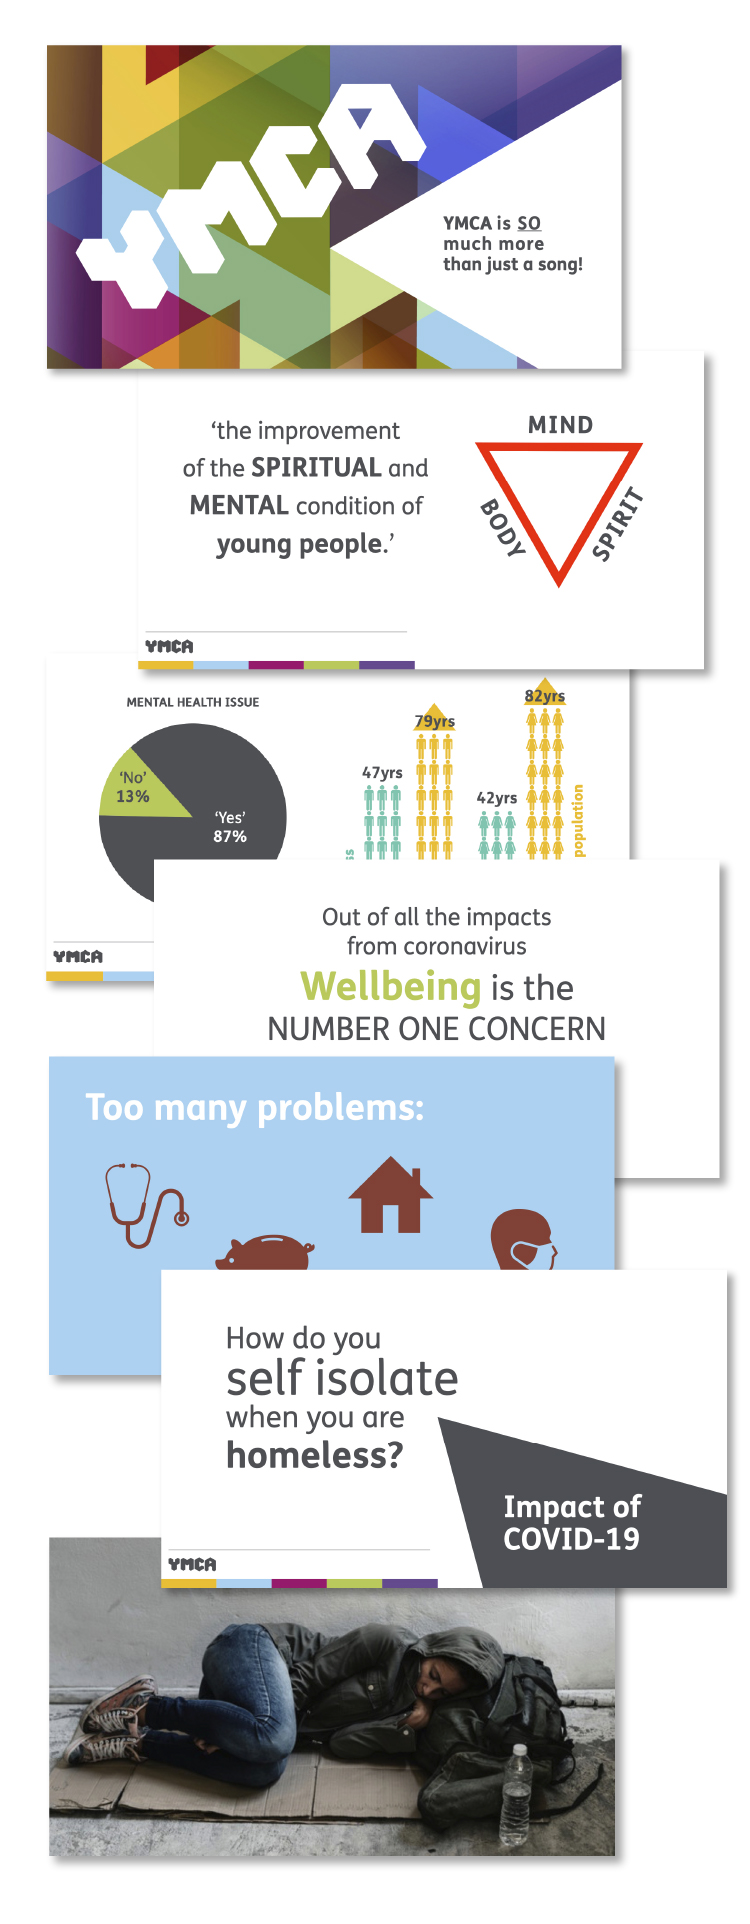 design support to create a YMCA slide deck presentation and infographics